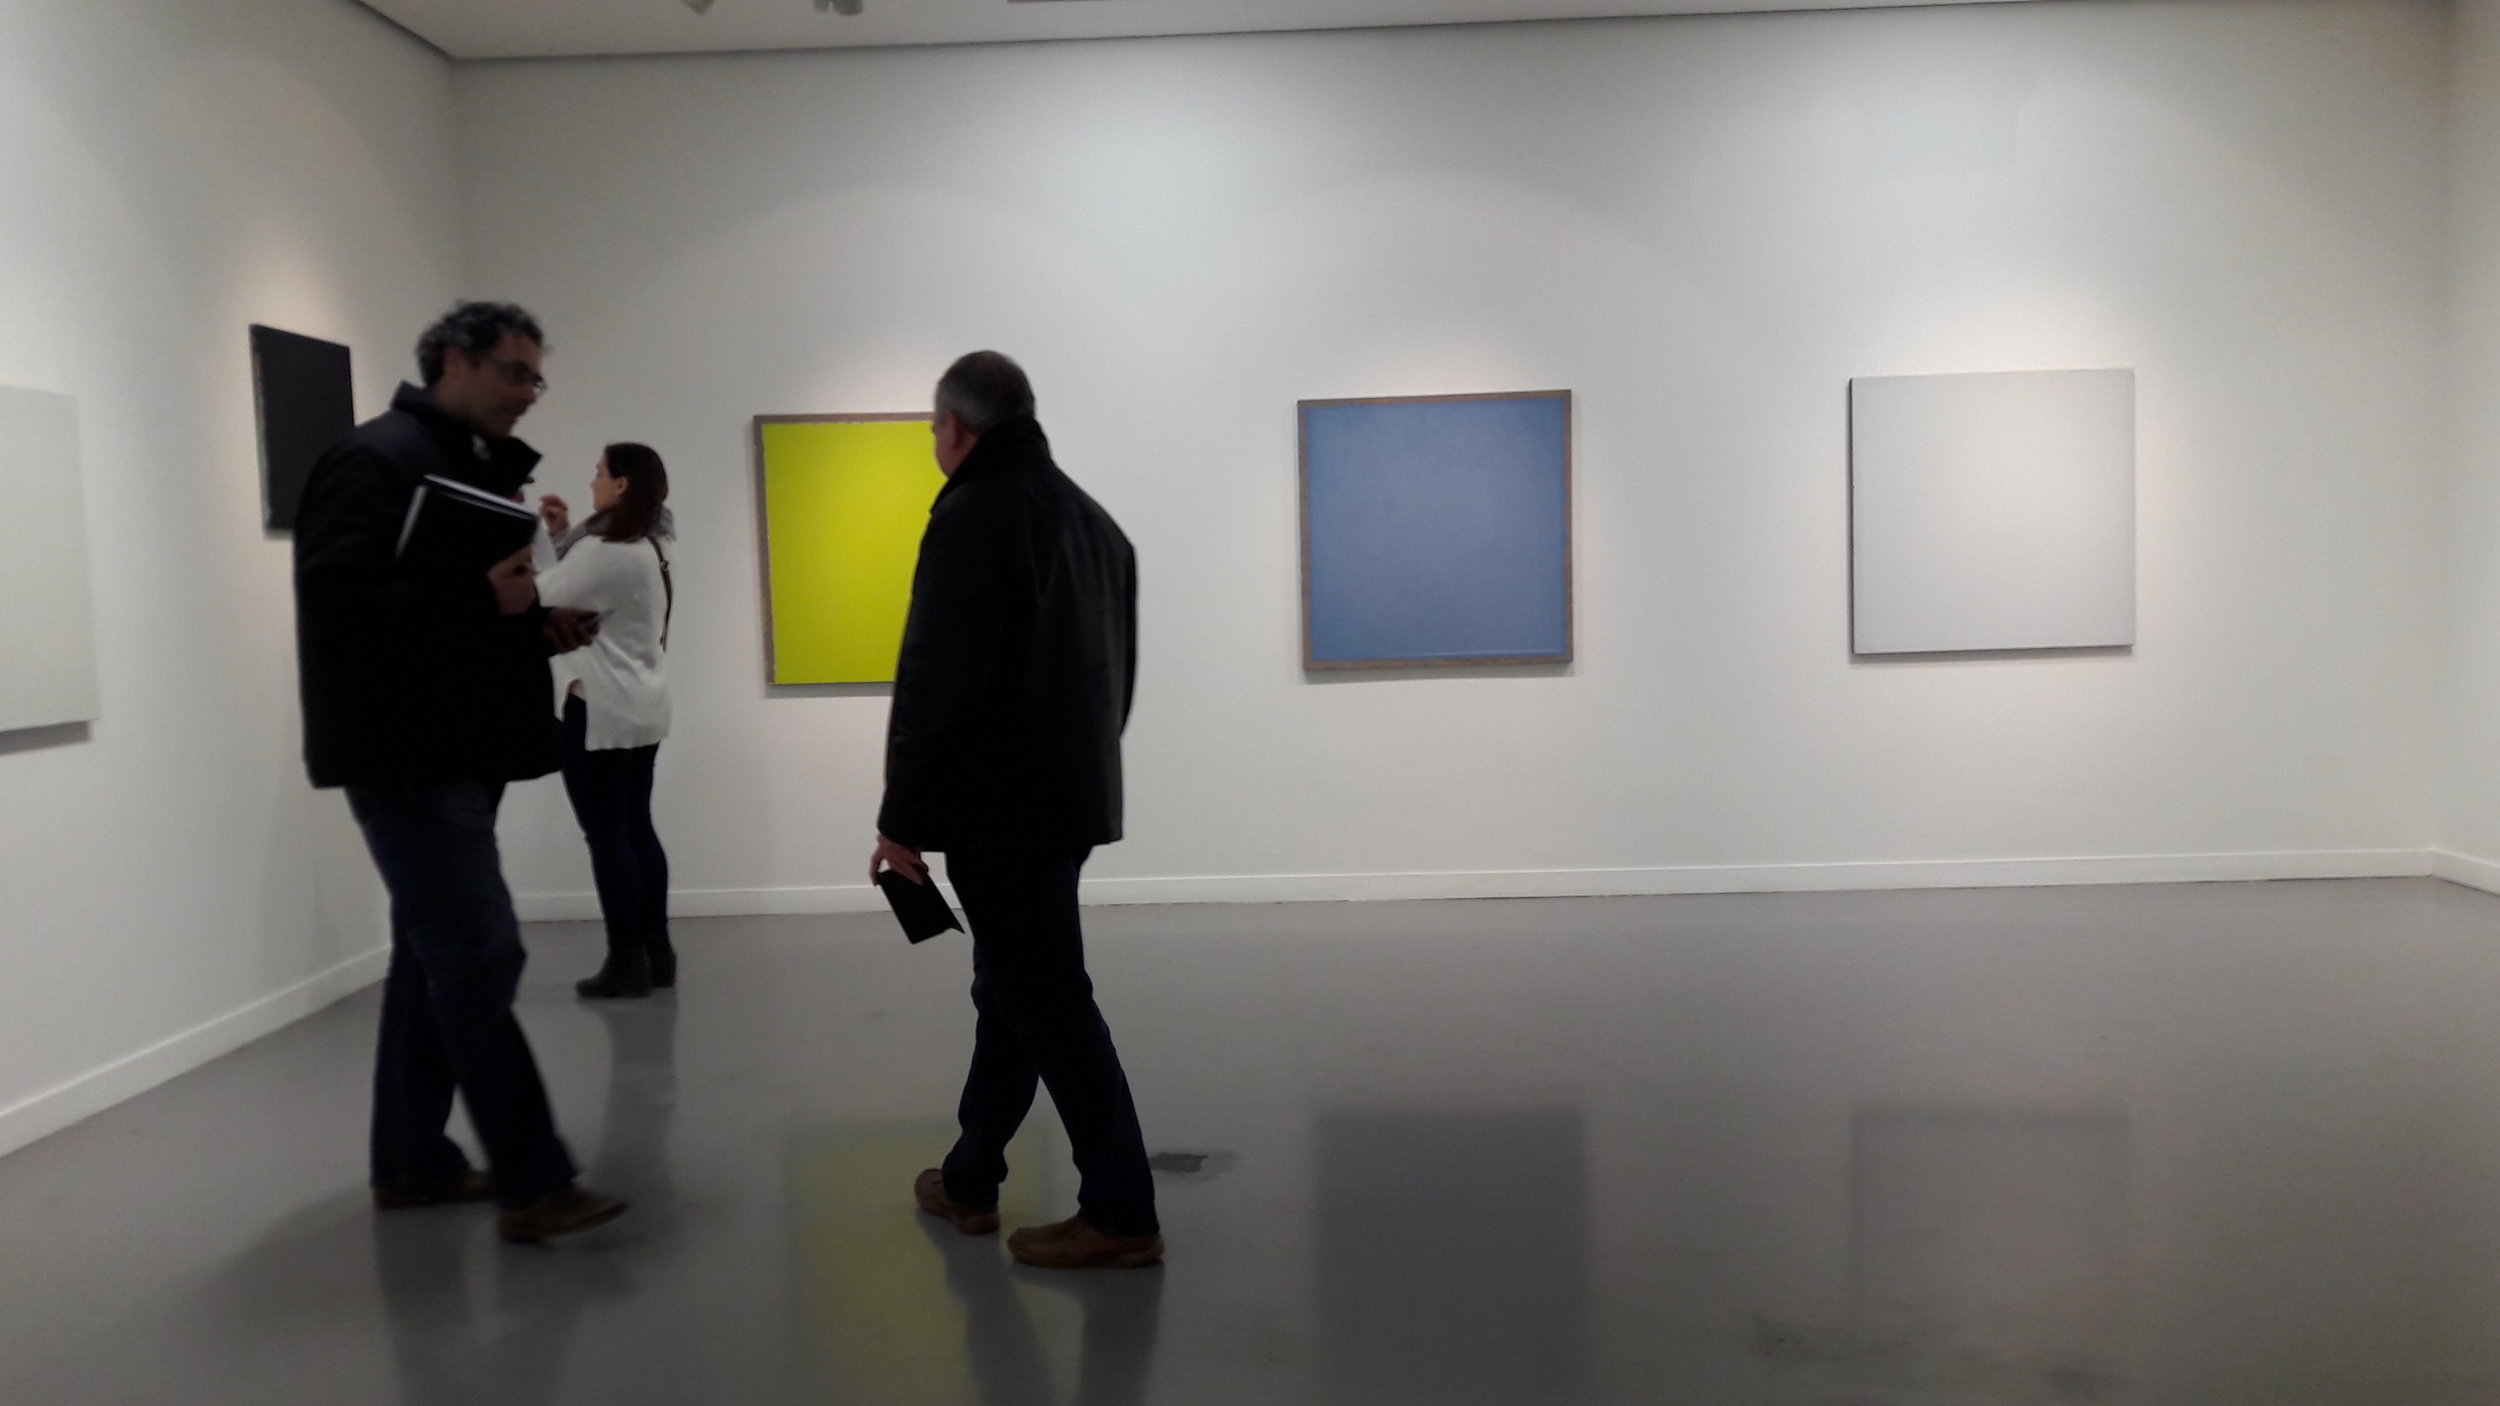 Field Trips - Over the course of the year we will plan at least 5 field trips to experience art in the gallery setting.